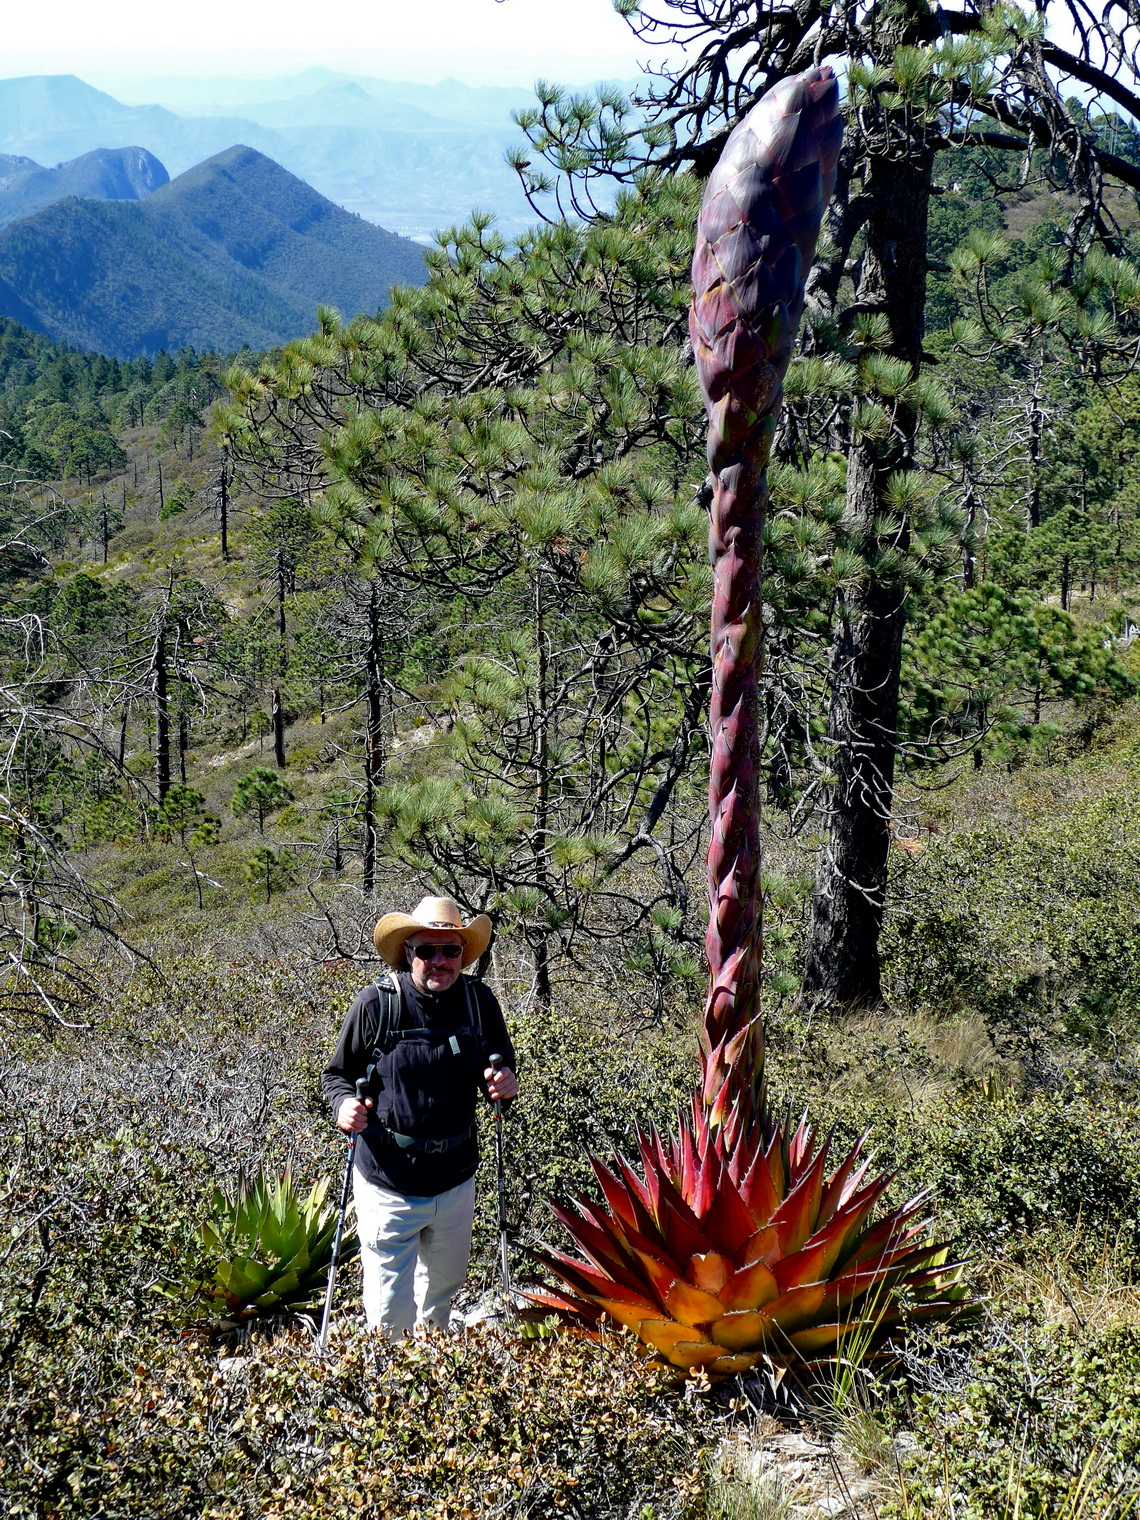 Tommy and a big Agave flower with red leaves on the way to El Penitente